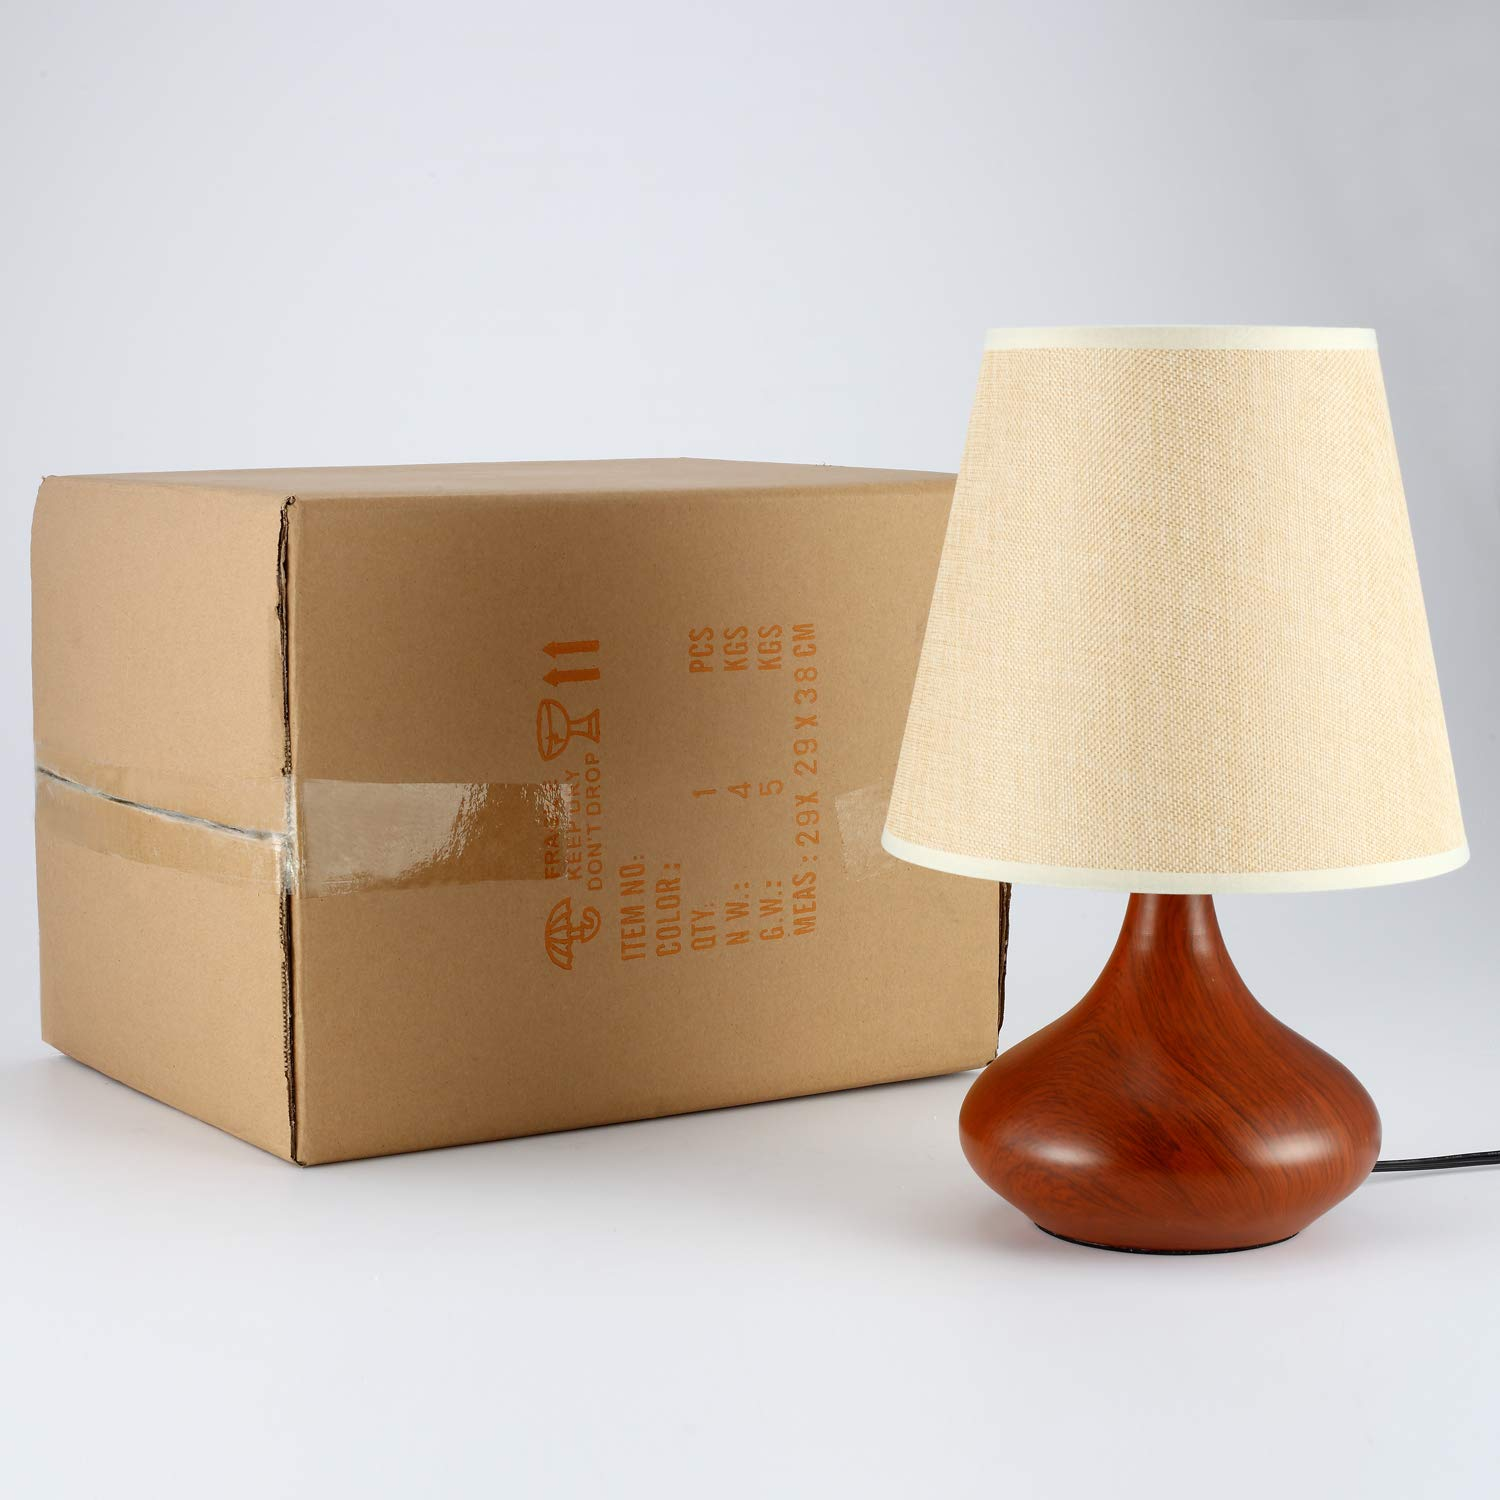 Rustic Bedside Table Lamp, DengMall Wood Grain End Table Lamp & Side Desk Lamp, White Fabric Shade and Brown Metal Base, Perfect for Bedroom Nightstand, Living Room, Office, Dorm by DengMall (Image #9)